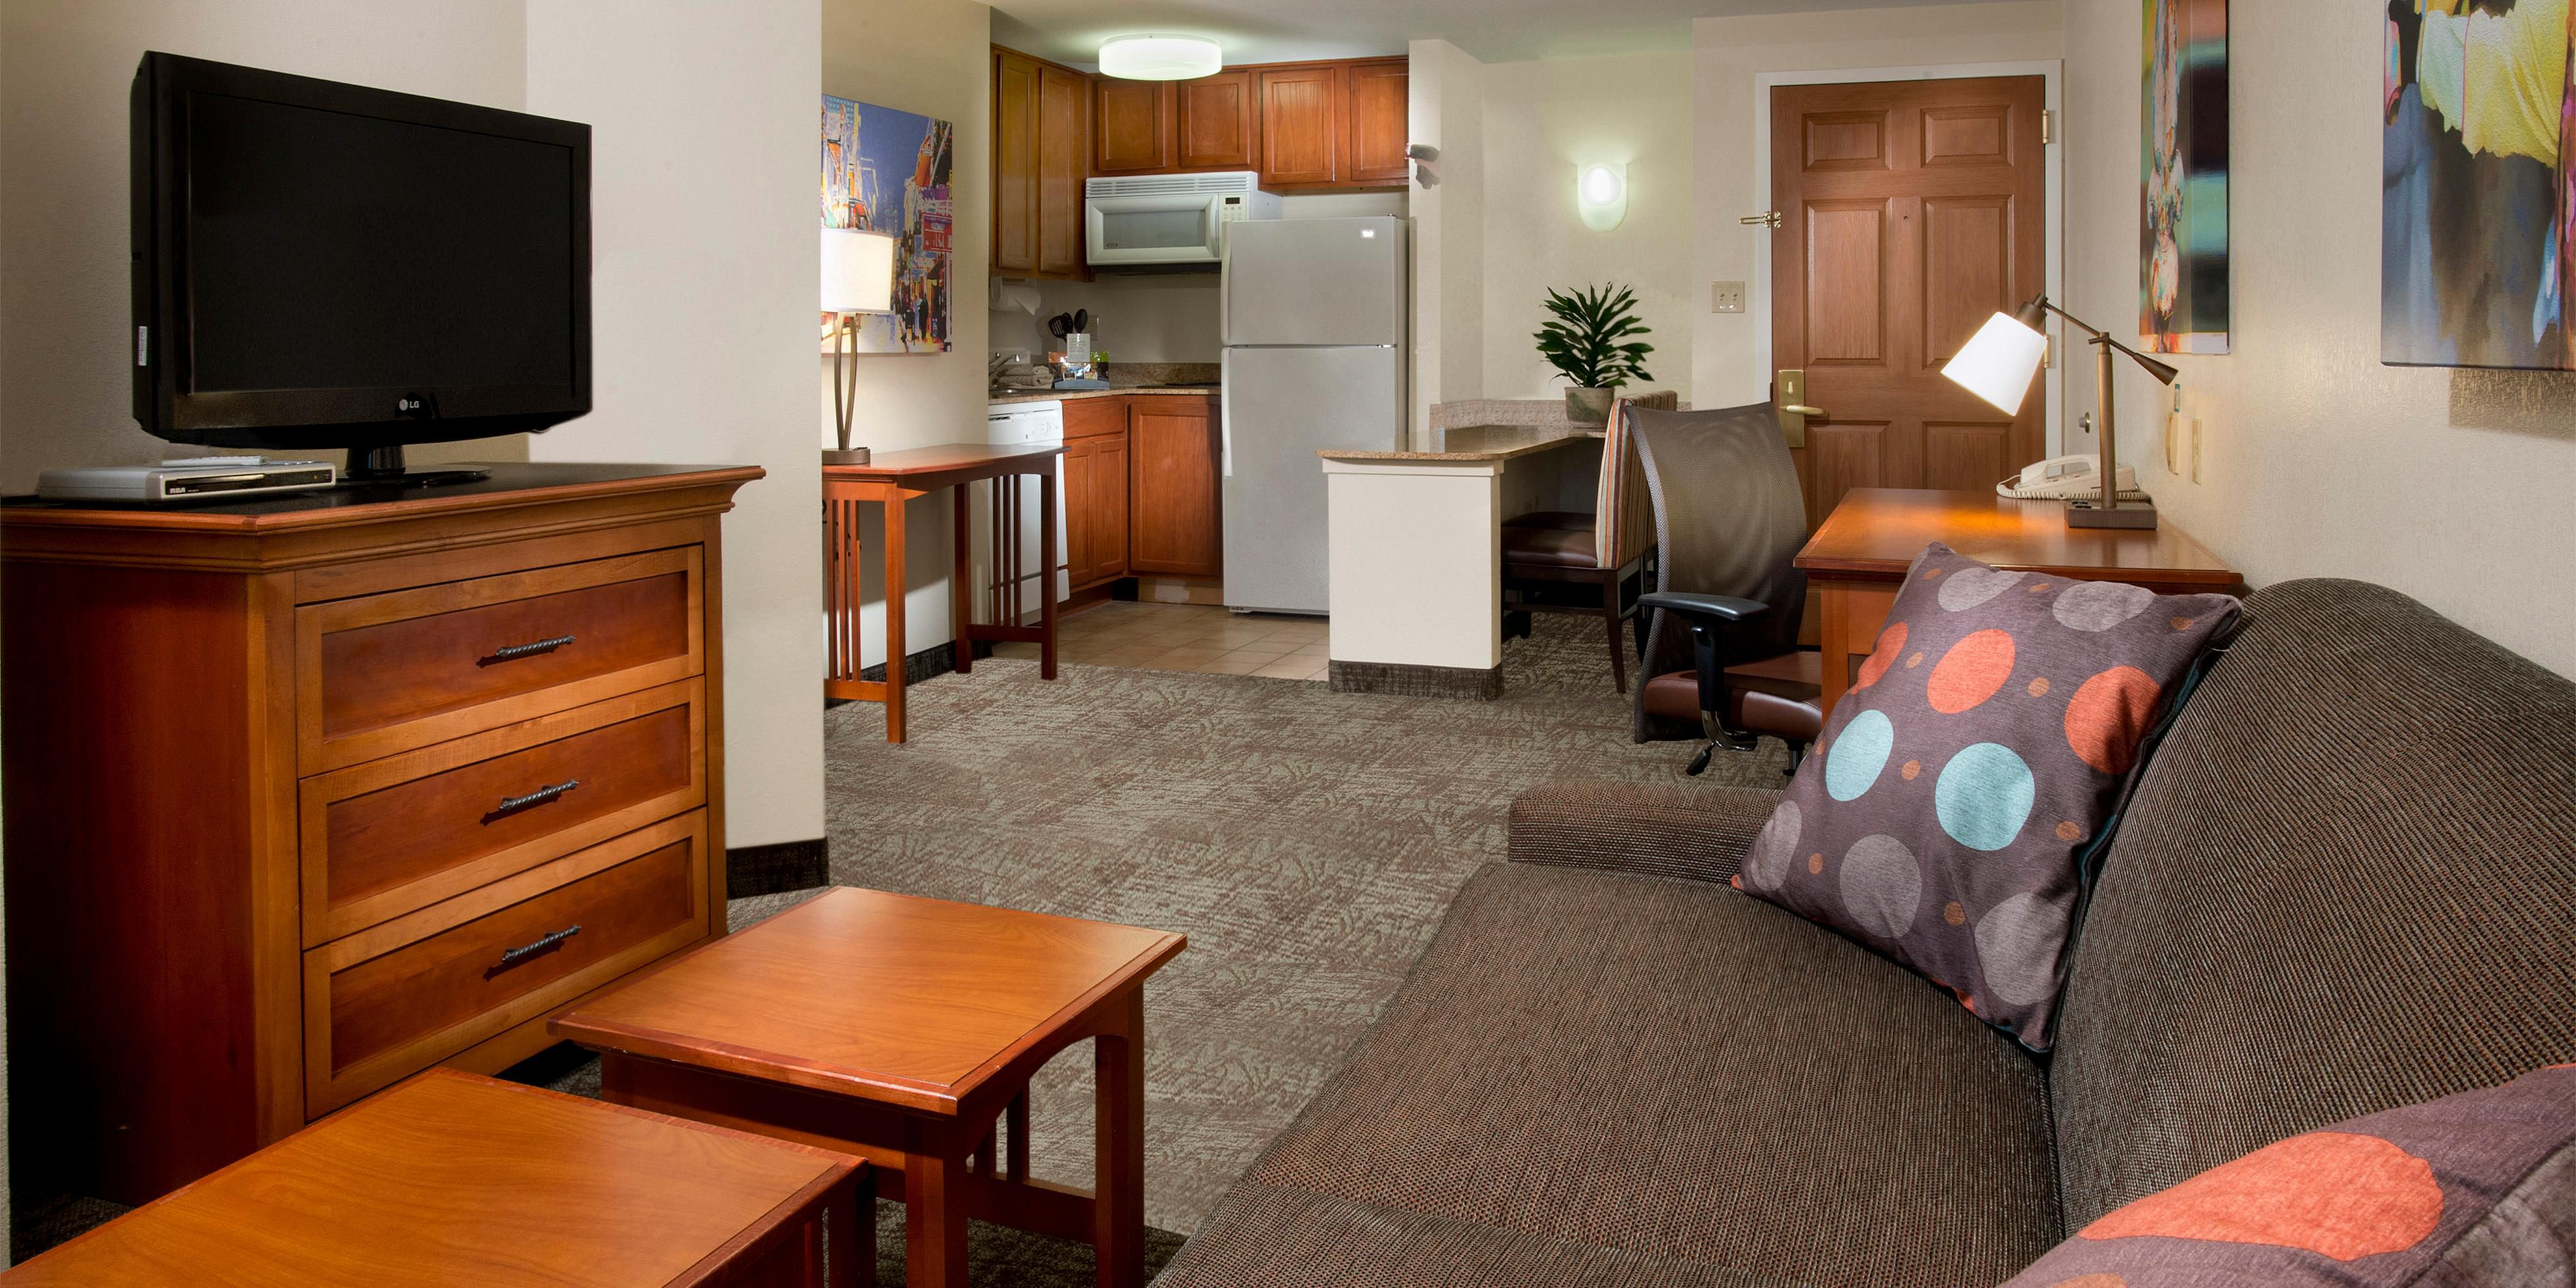 chori virginia new orleans bedroom residence in clsc rooms hotel inn suites hotels hor charlottesville suite